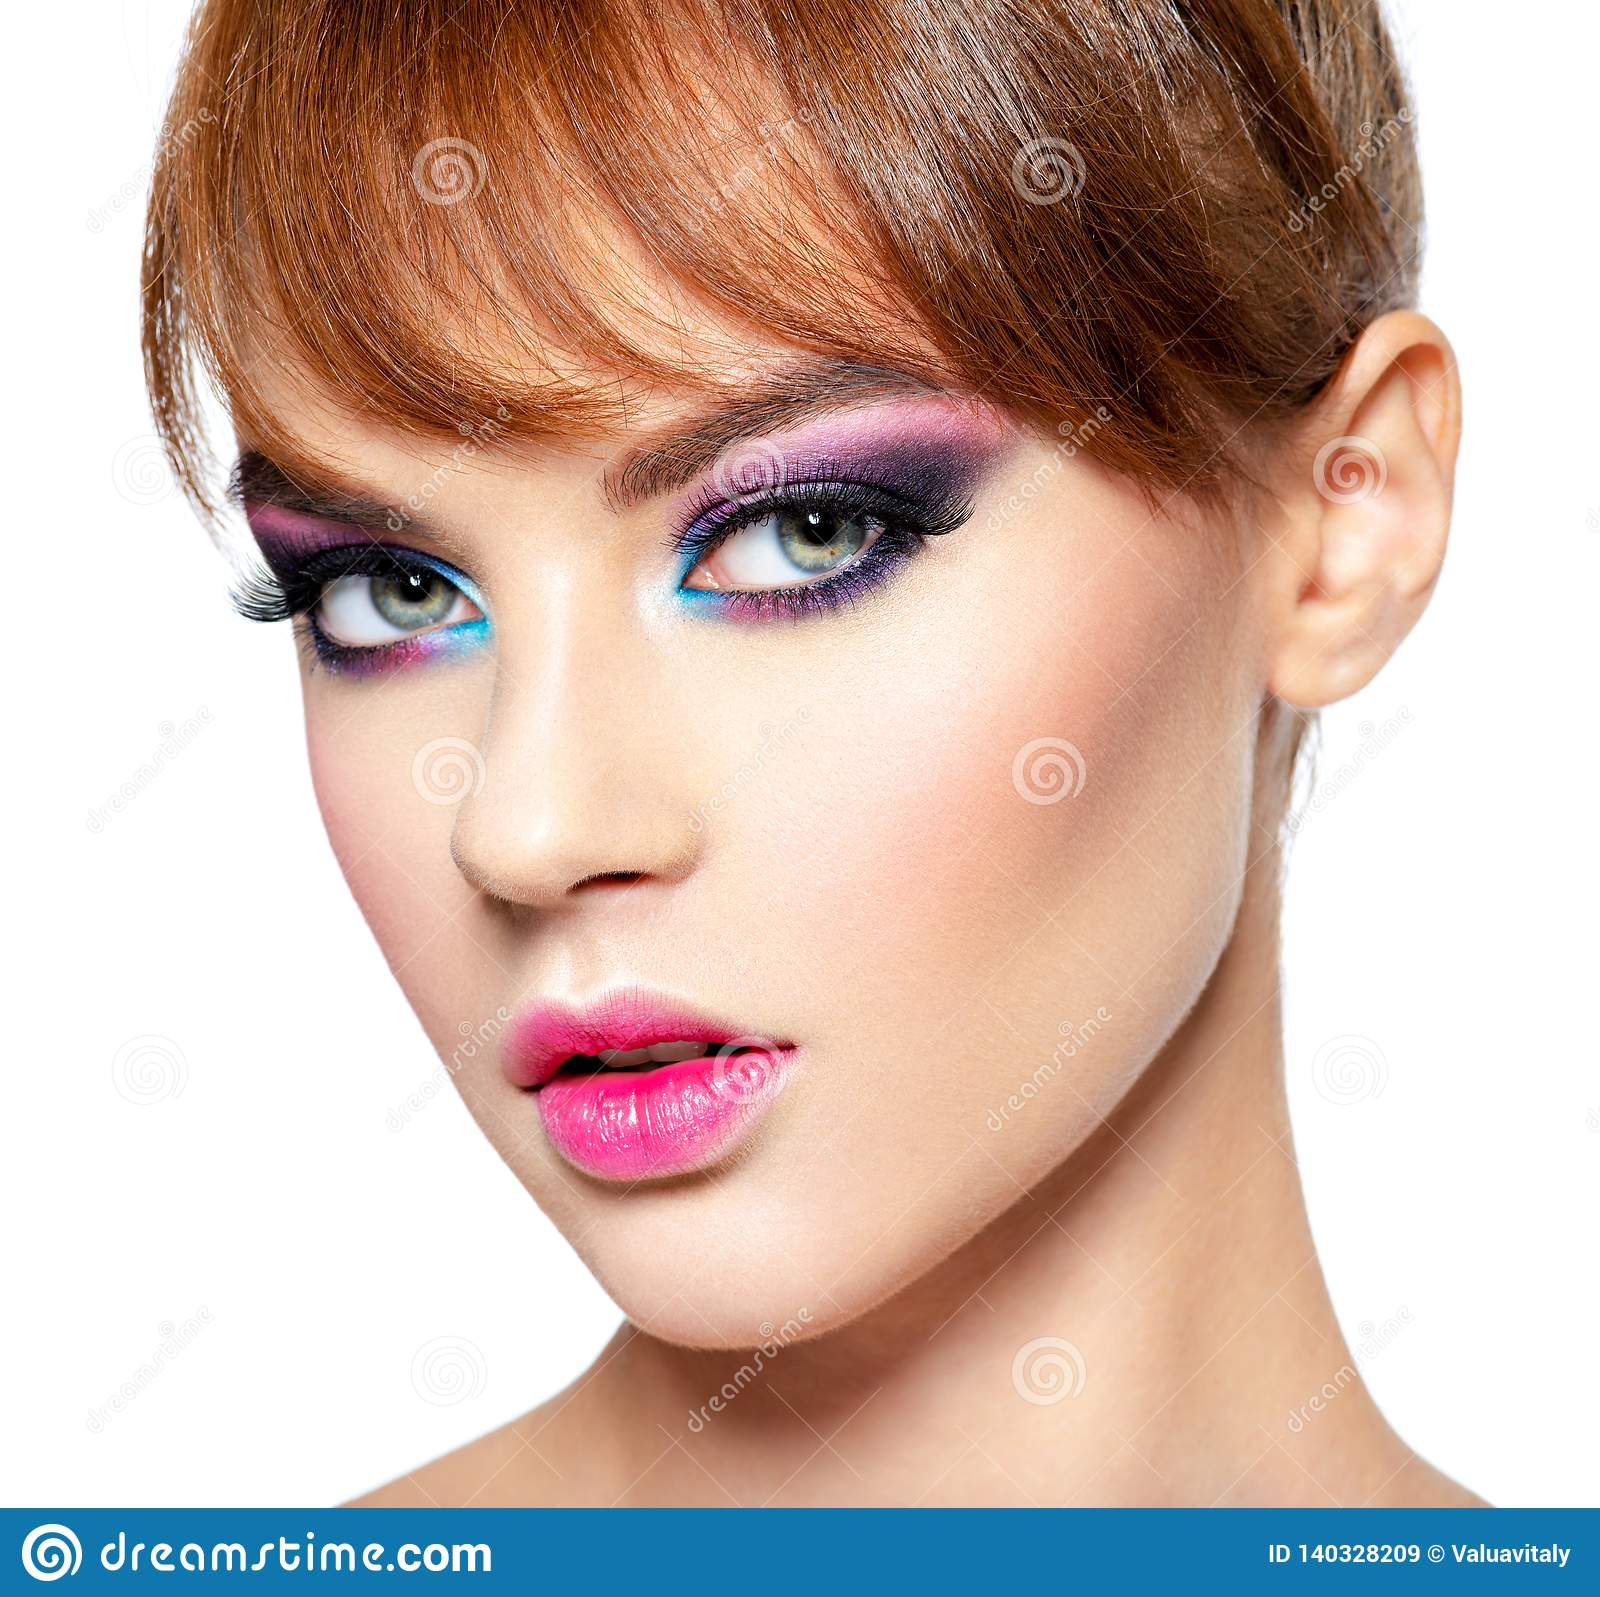 Fashion Model With Creative Eye Makeup Stock Image